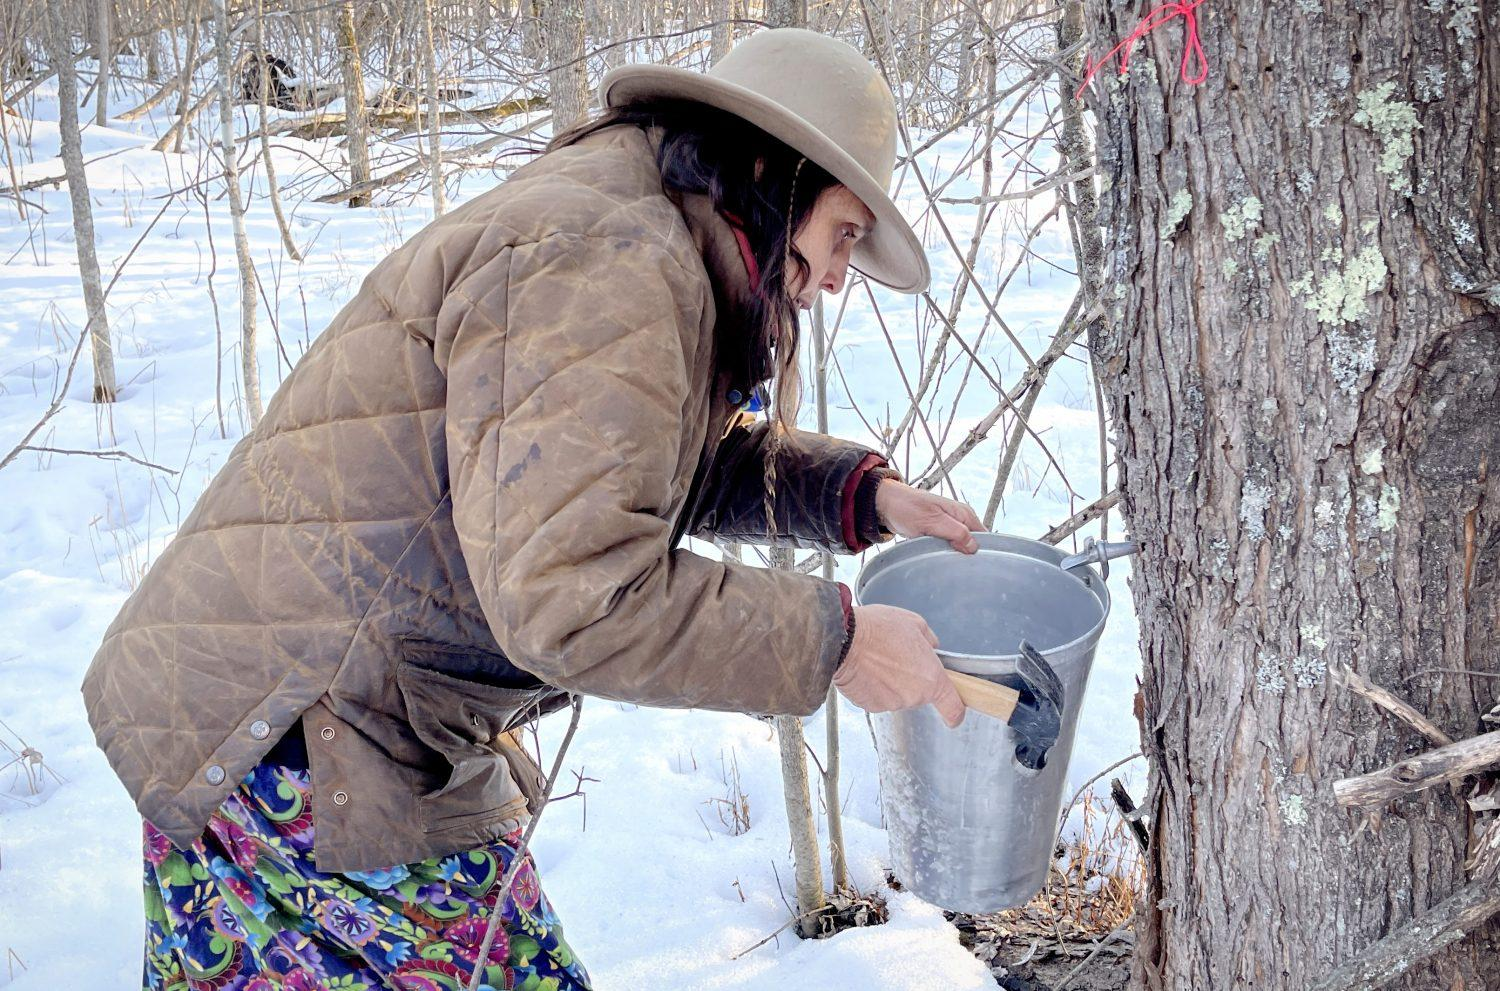 Winona LaDuke taps a maple tree near the Enbridge Line 3 pipeline during a ceremony in early March.